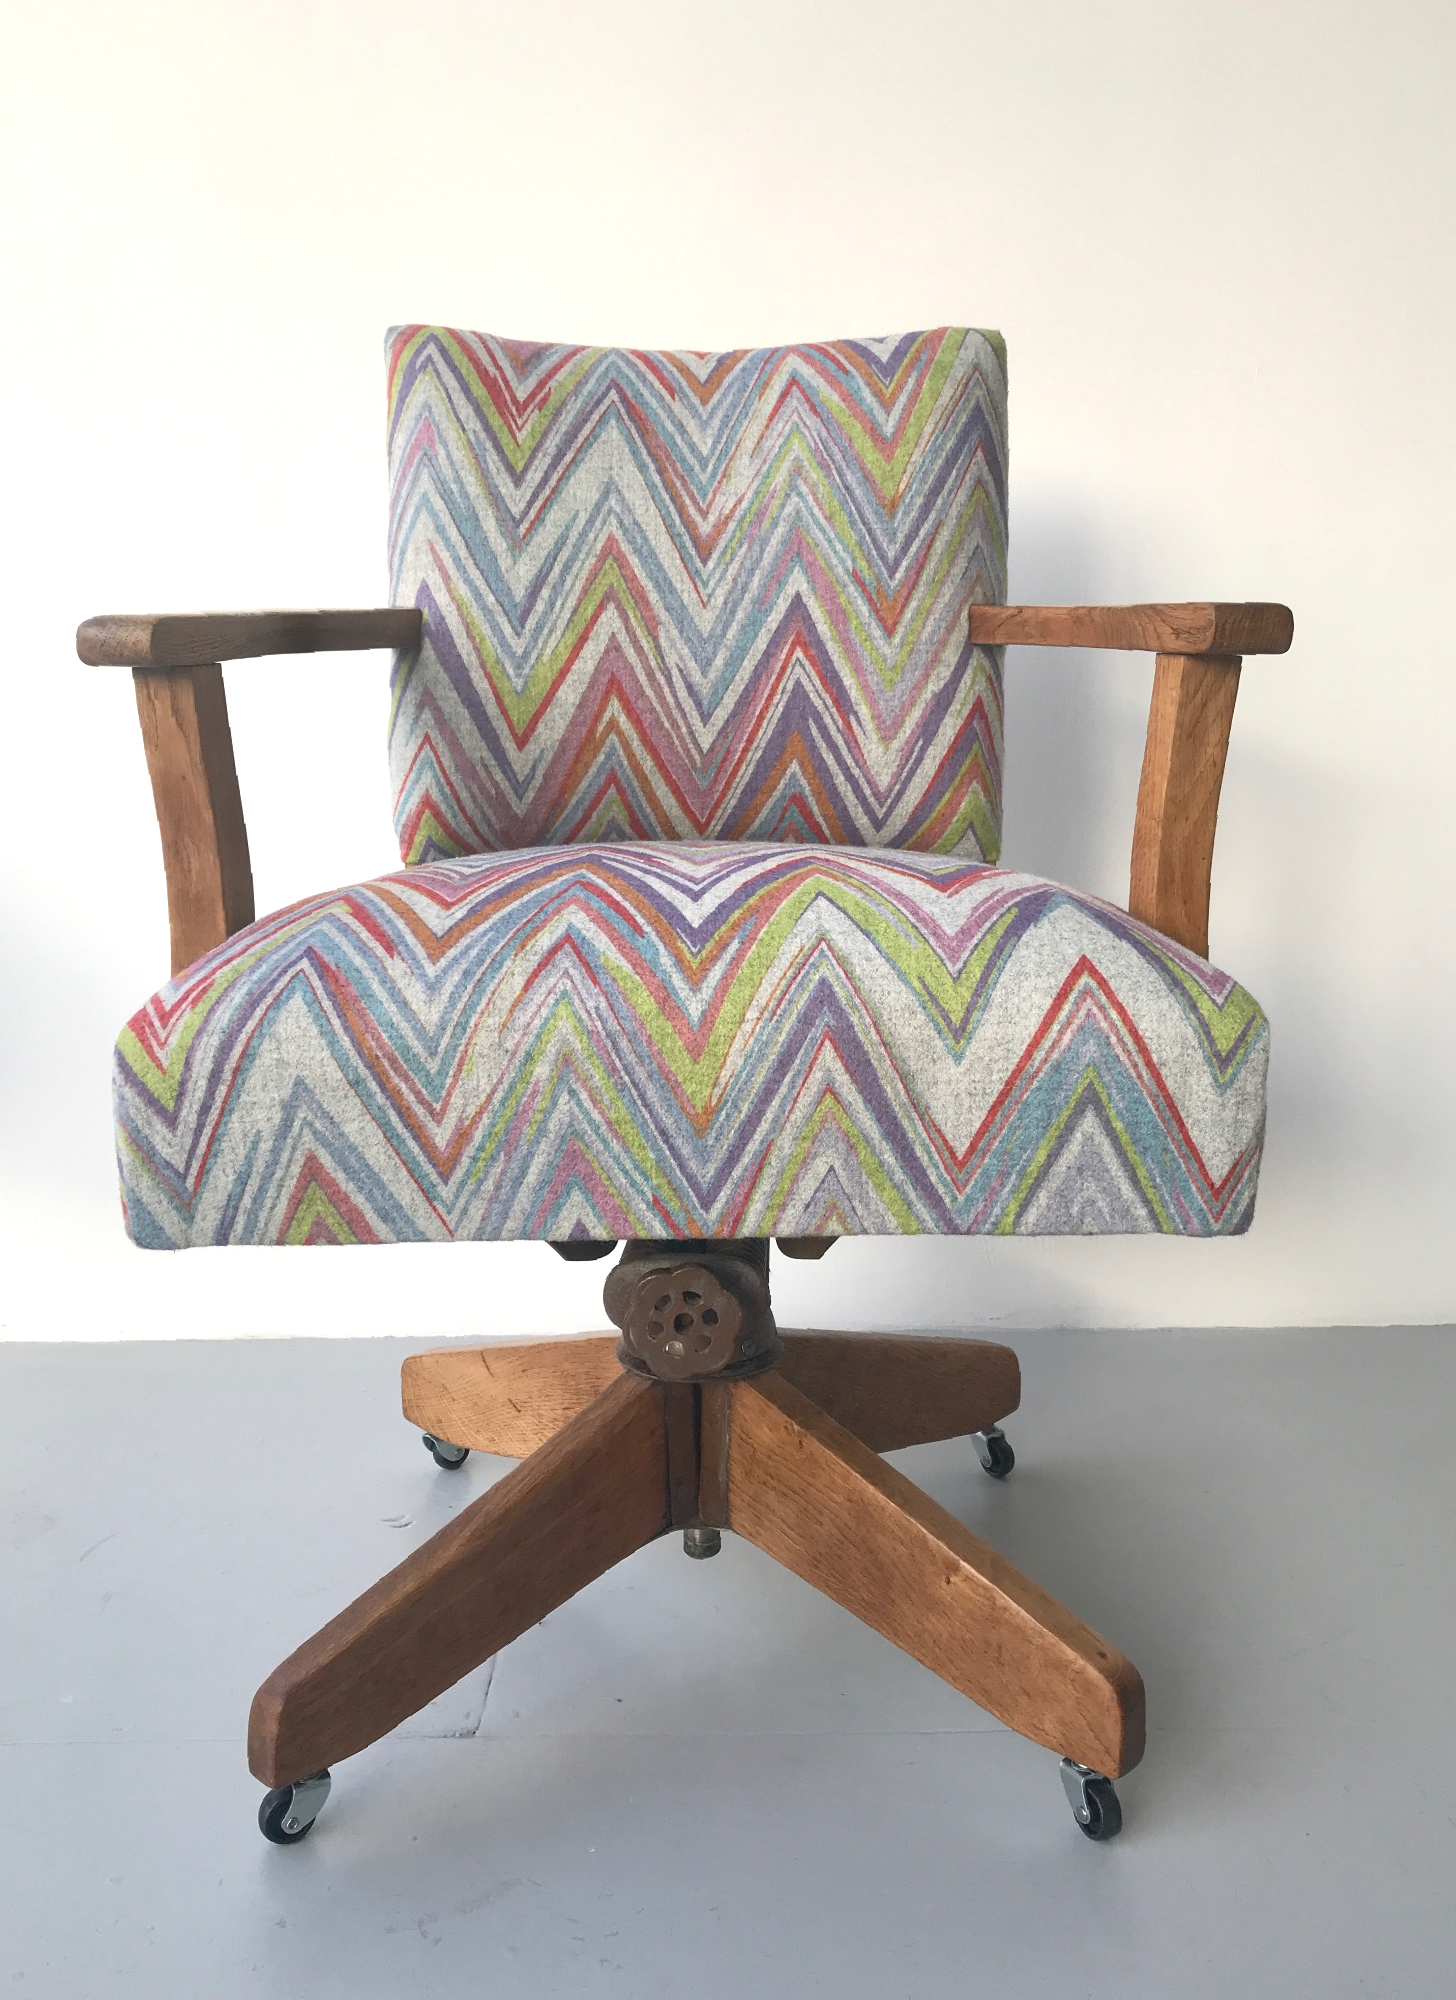 Vintage desk chair in camira fabric Zigzag  by Spring Upholstery Brighton